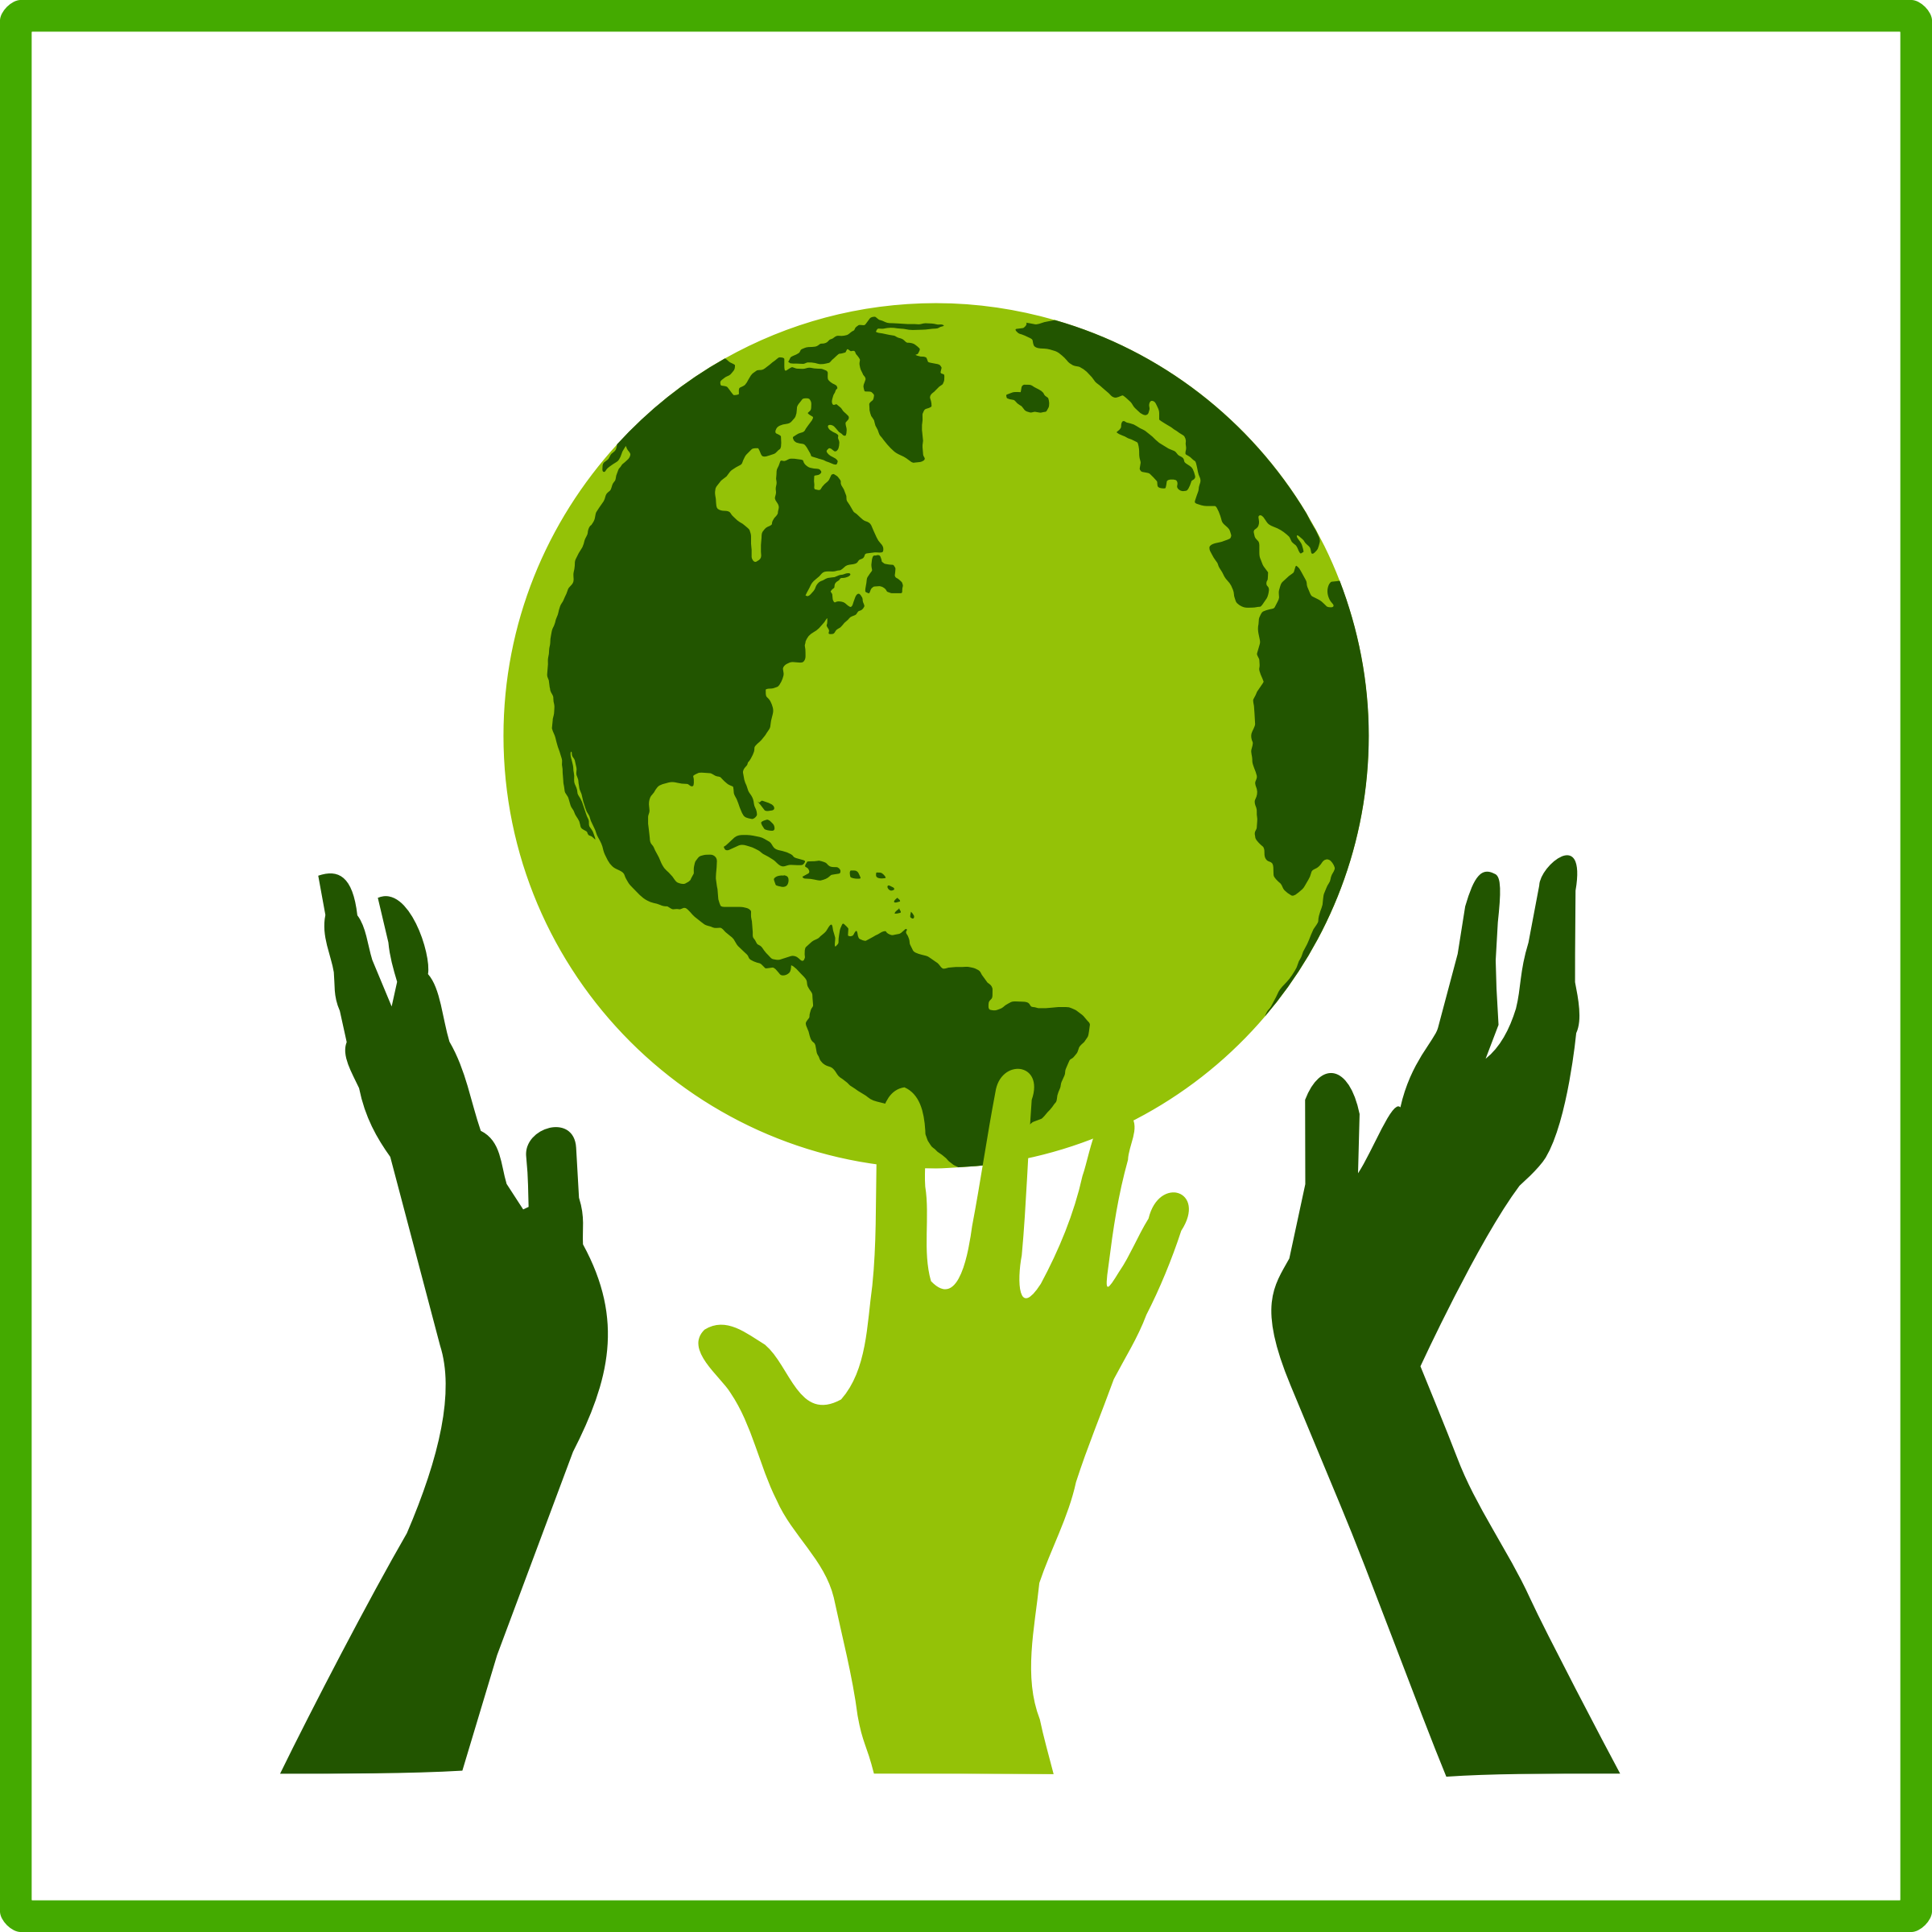 eco green solidarity icon by dominiquechappard, An eco